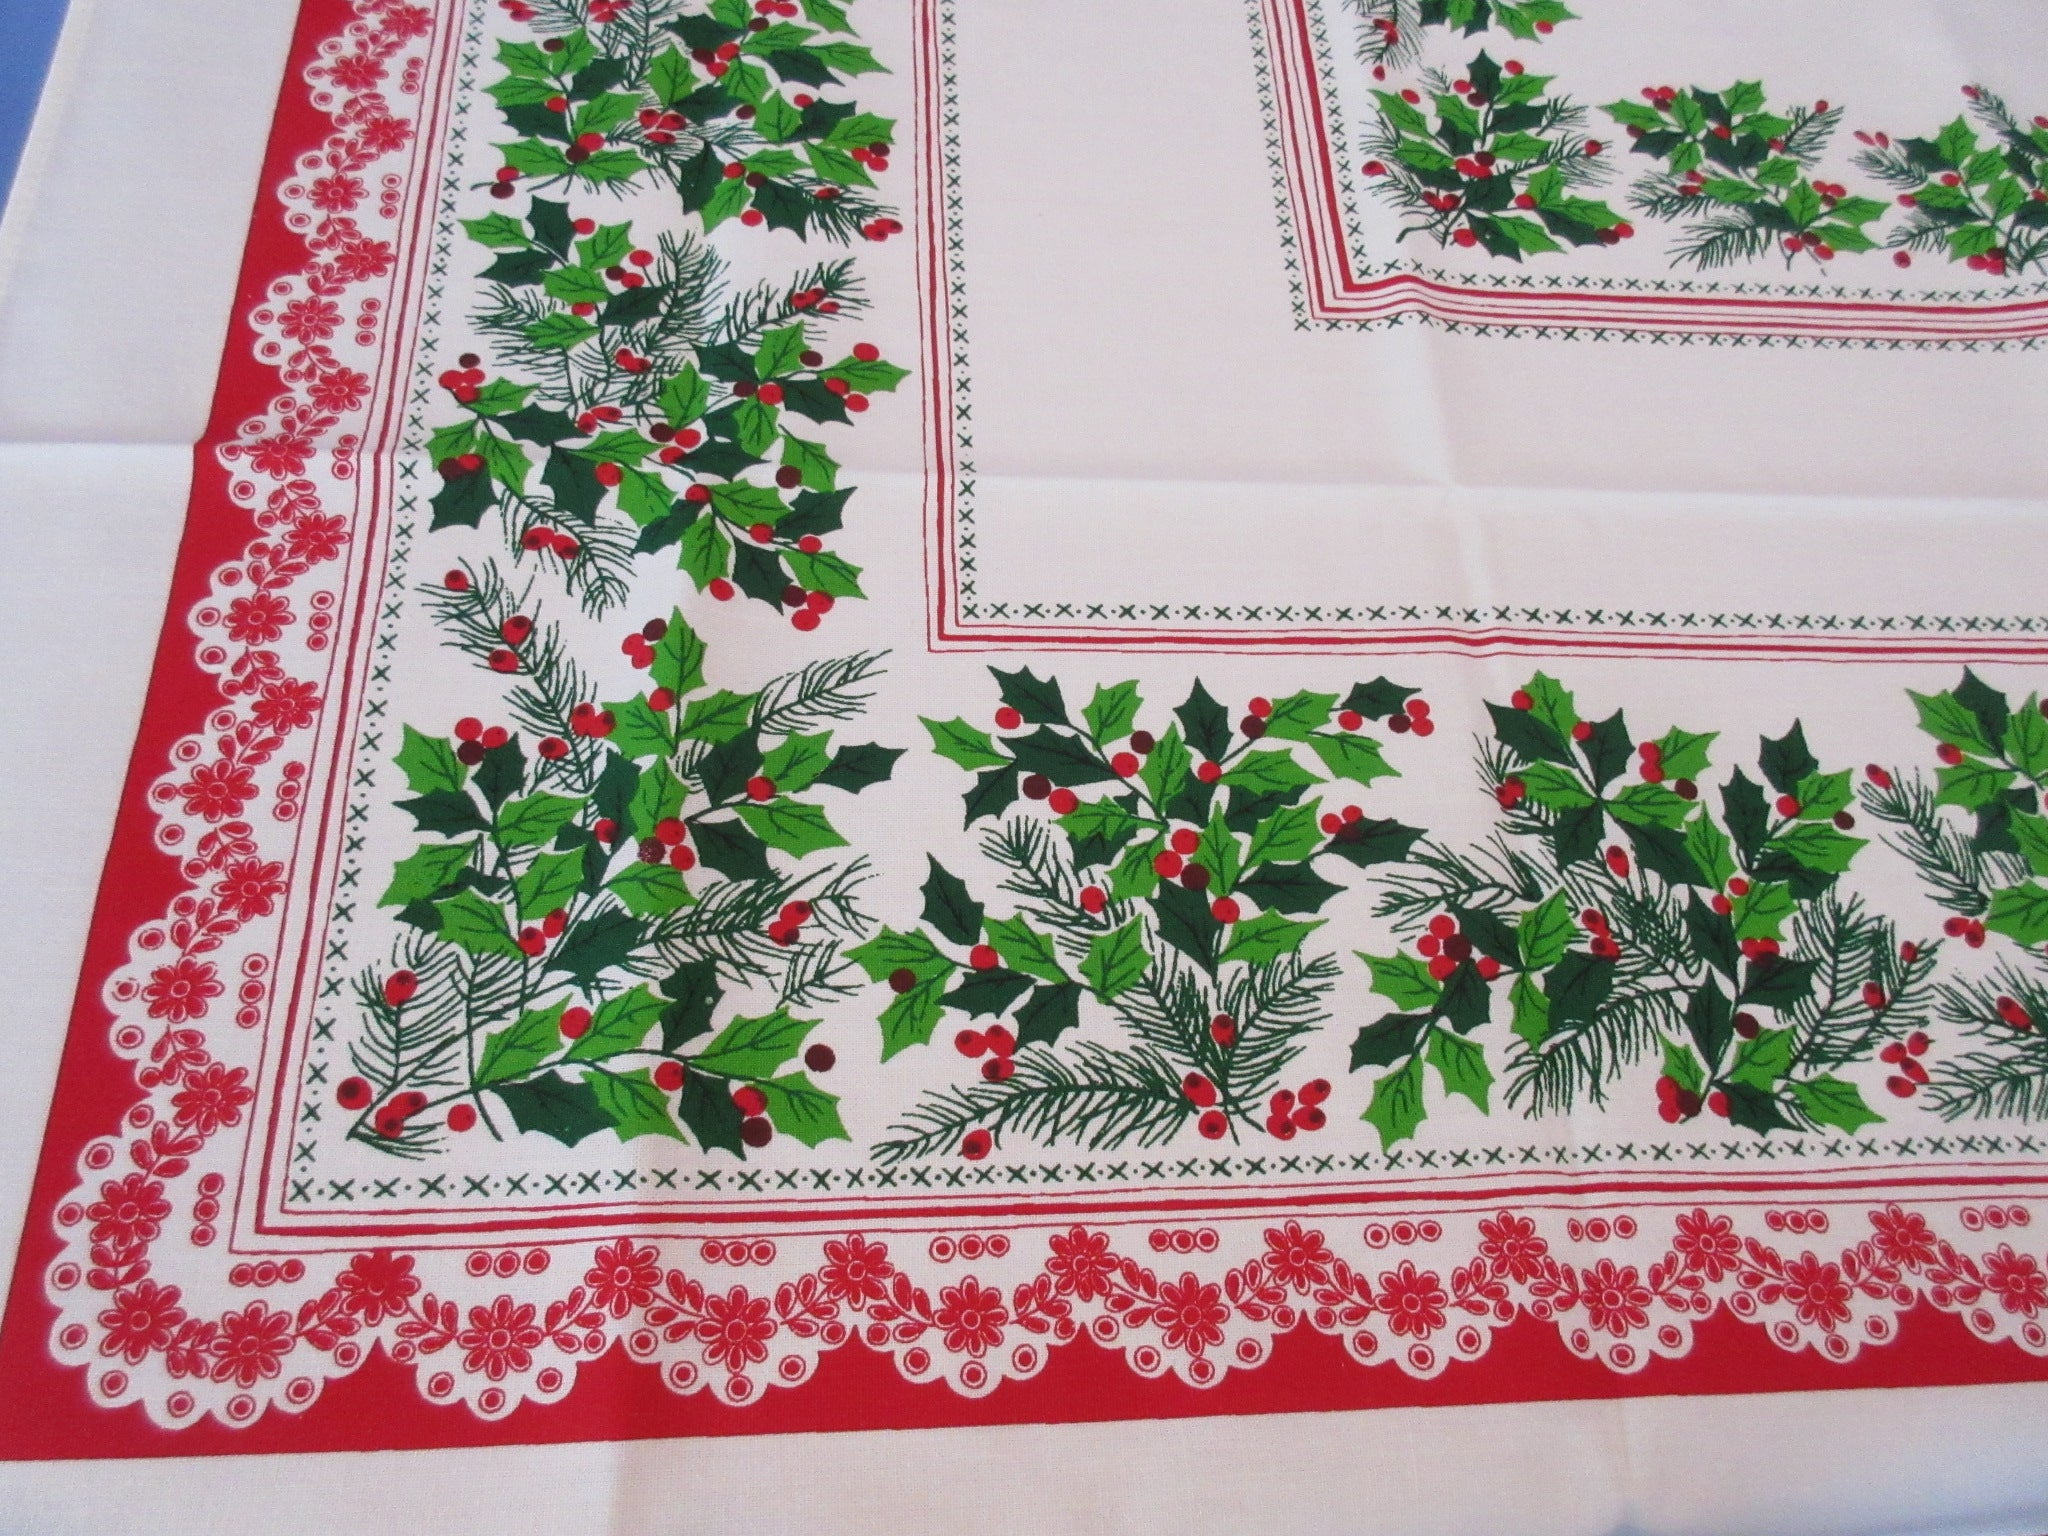 Christmas Holly Lace Poly Cotton MWT Novelty Vintage Printed Tablecloth (68 X 52)